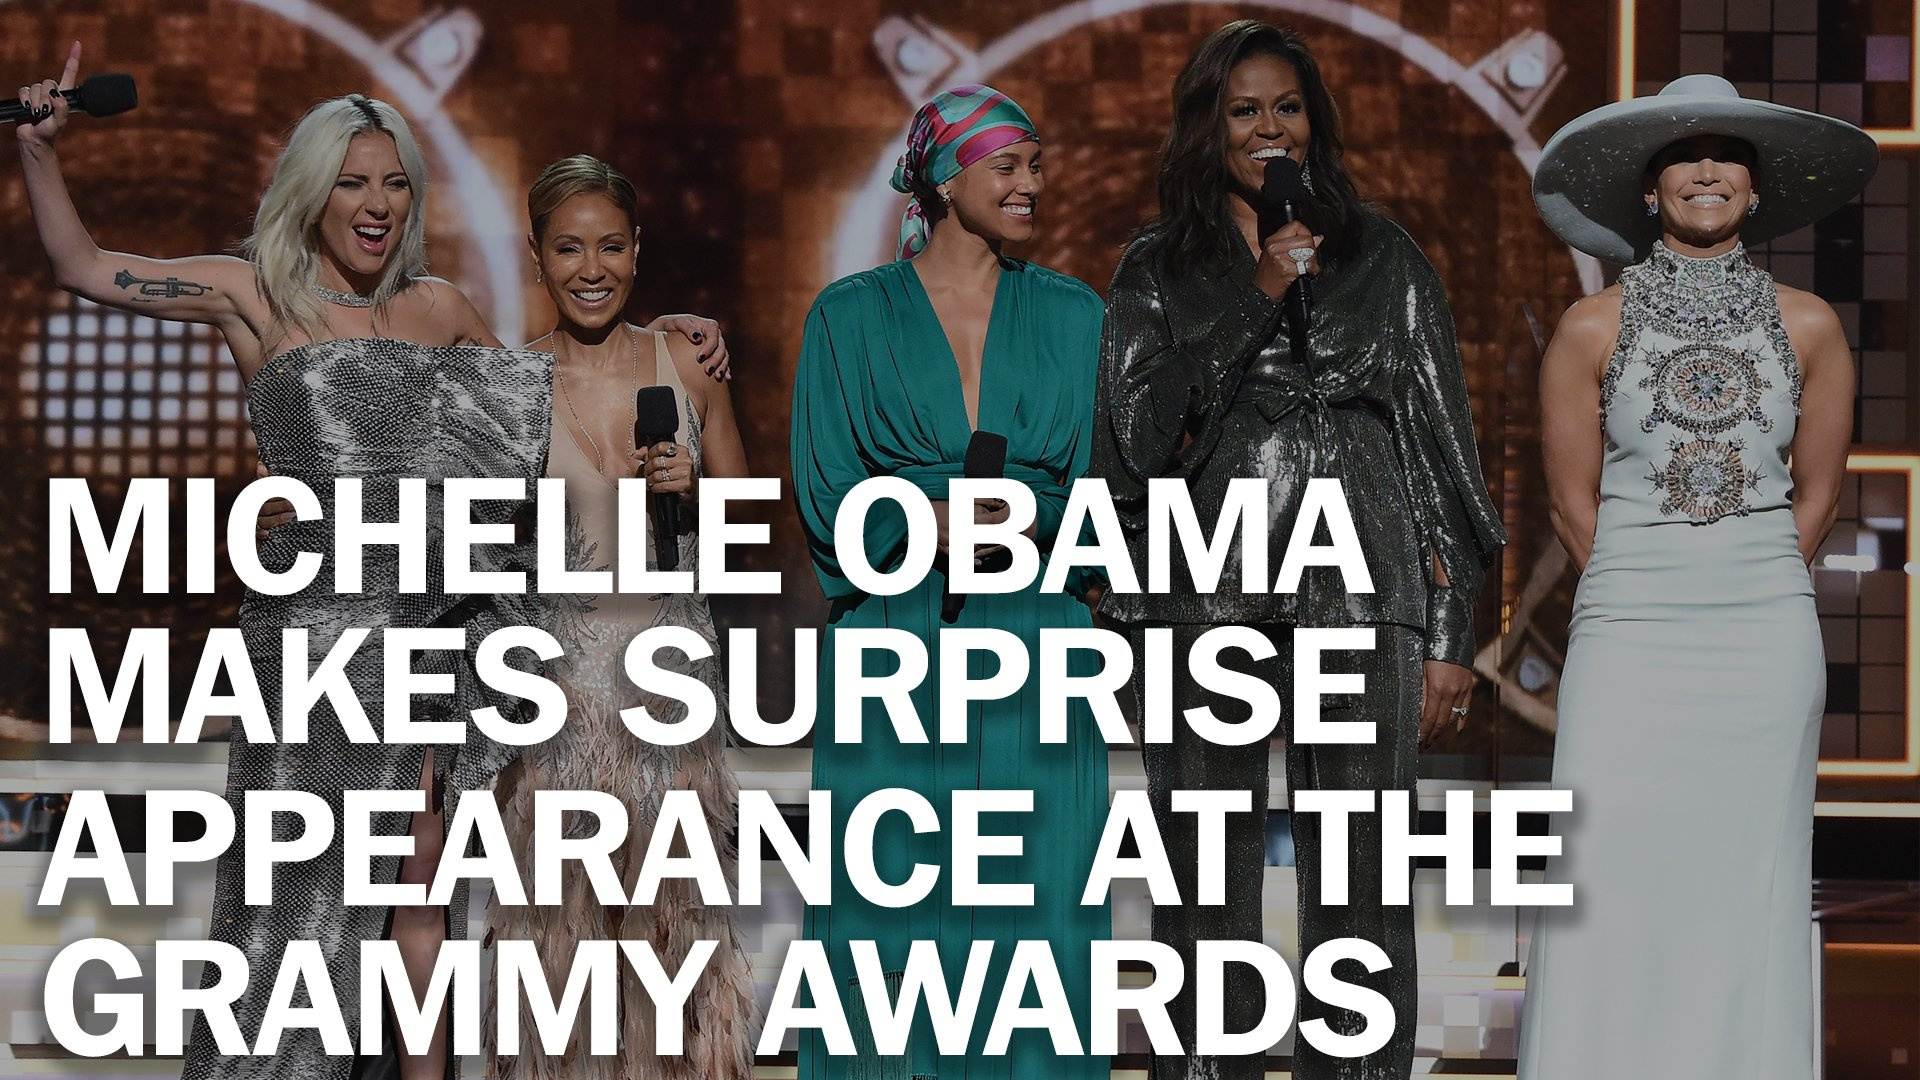 Michelle Obama brought the crowd to their feet at the 2019 #Grammys https://t.co/1OWRyZy4sY https://t.co/F3xRwBLKeM